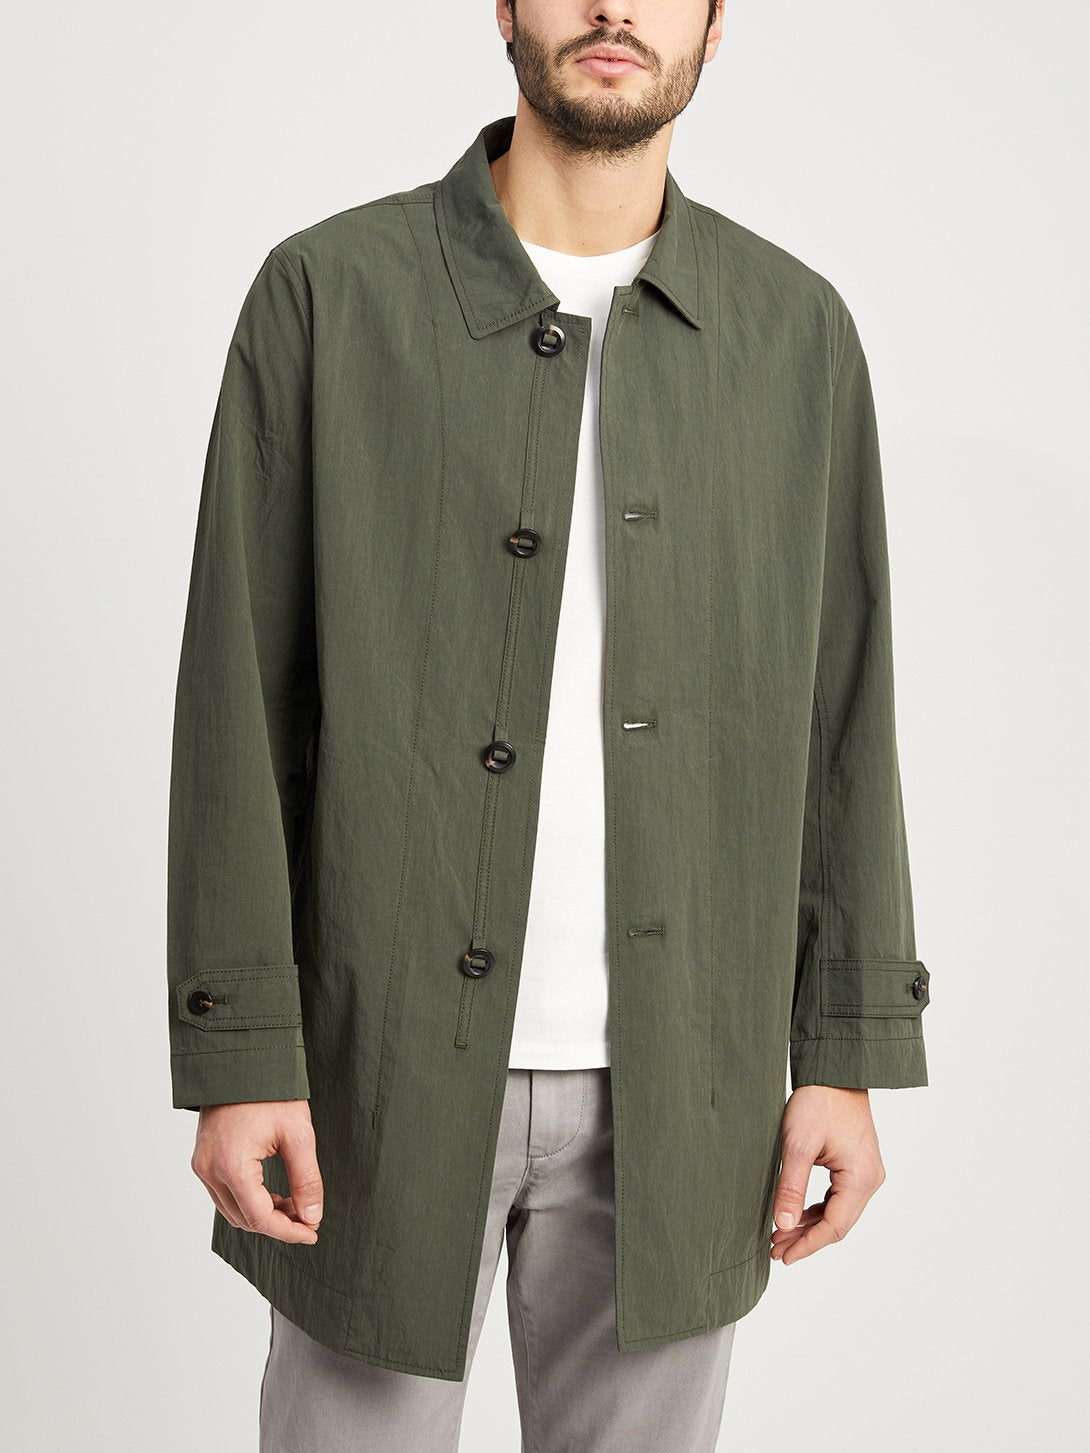 DARK OLIVE jackets for men marion trench ons clothing